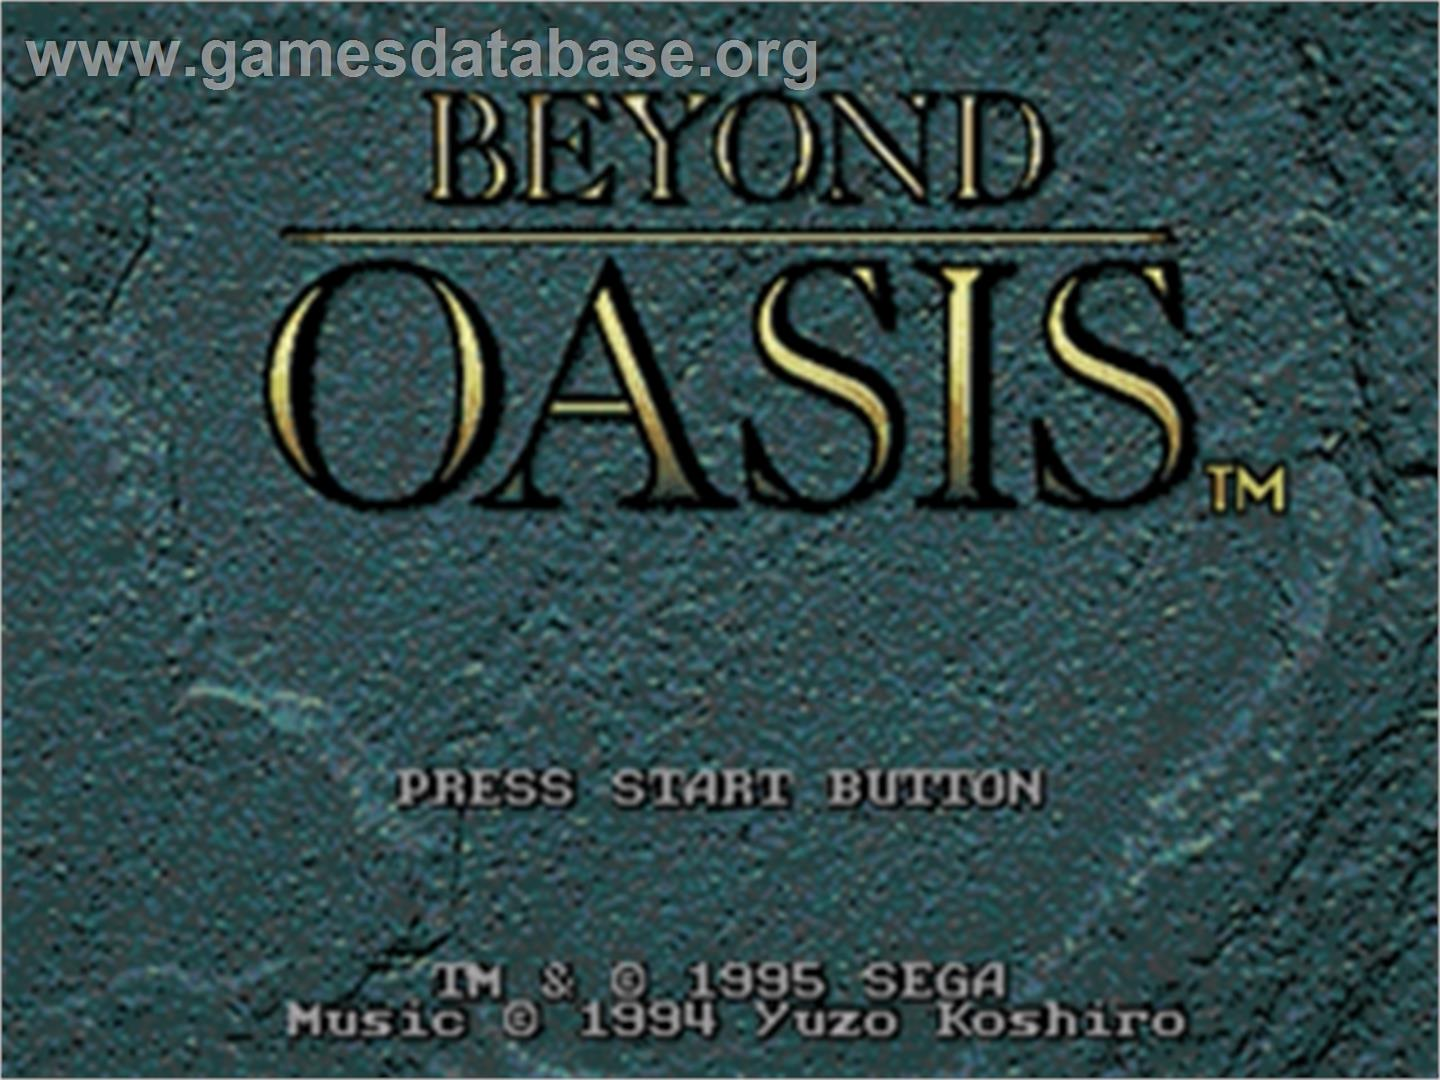 Beyond Oasis - Sega Genesis - Artwork - Title Screen